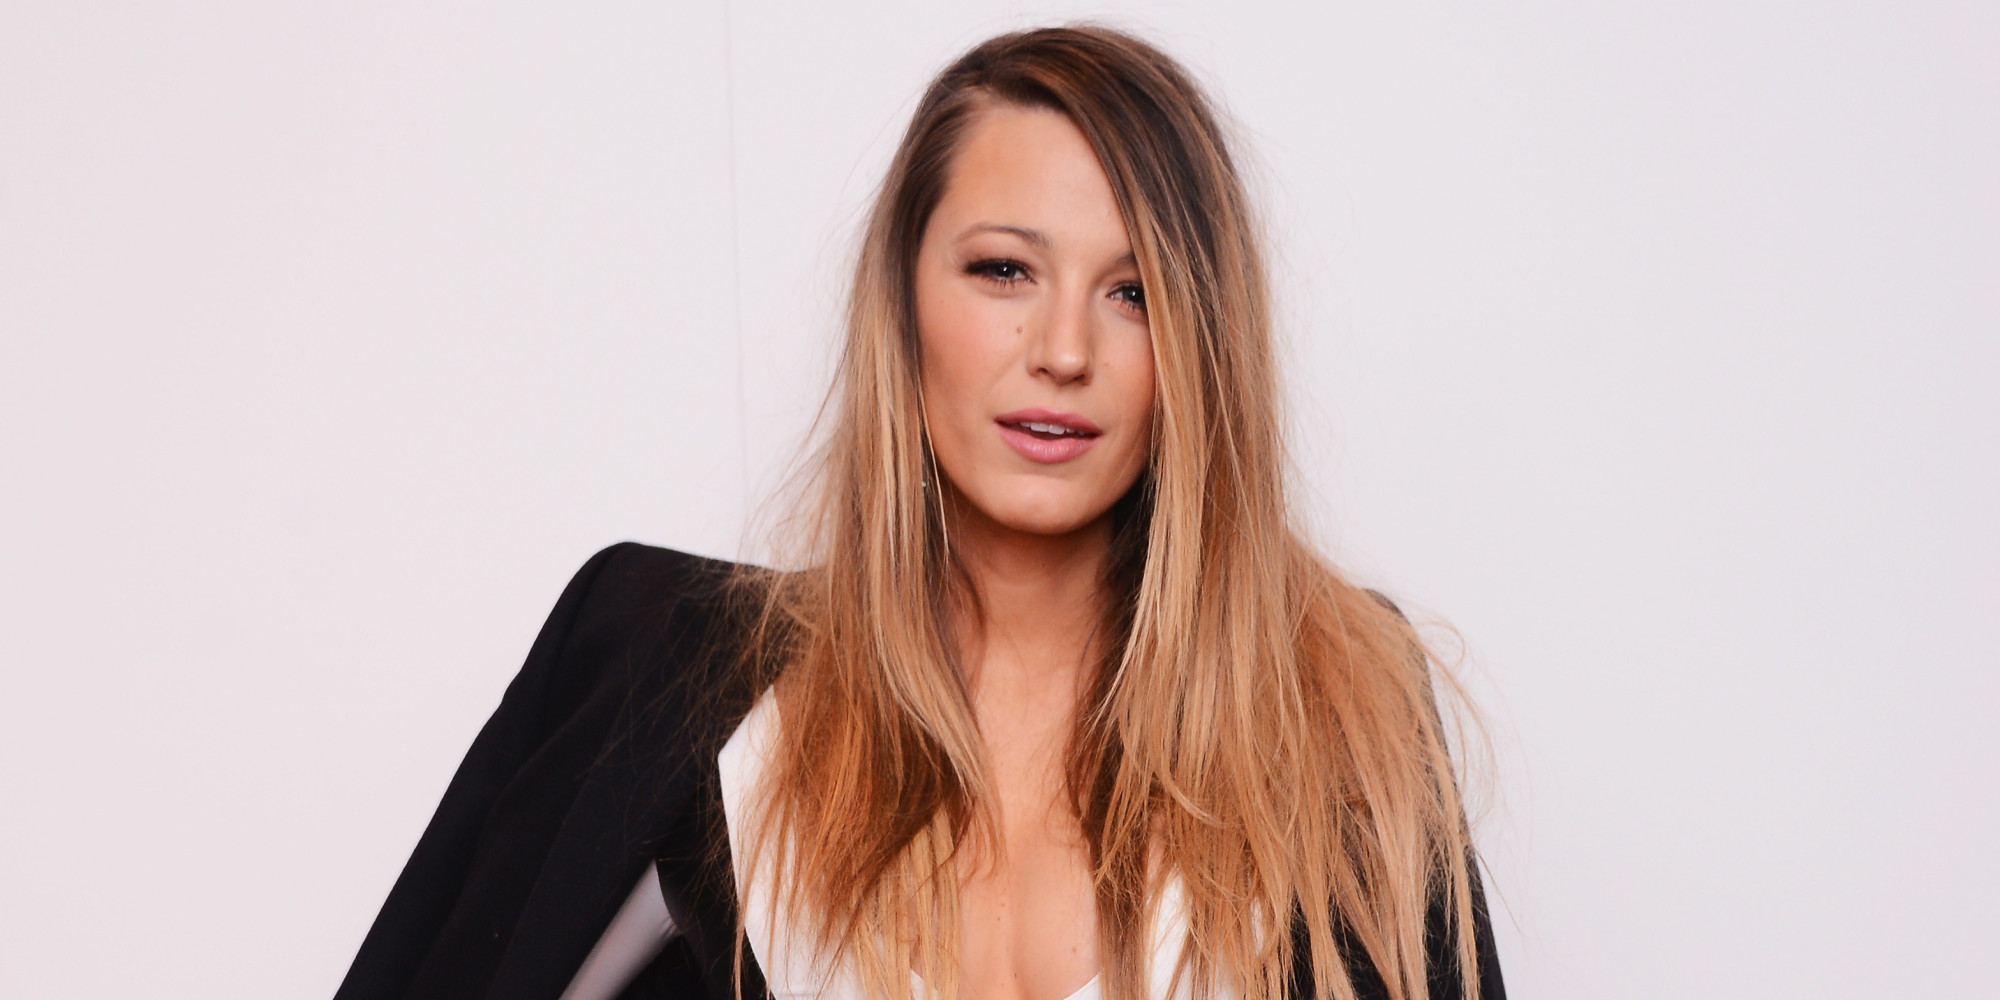 Blake Lively Looks Absolutely Gorgeous At New York Fashion ... Blake Lively Facebook